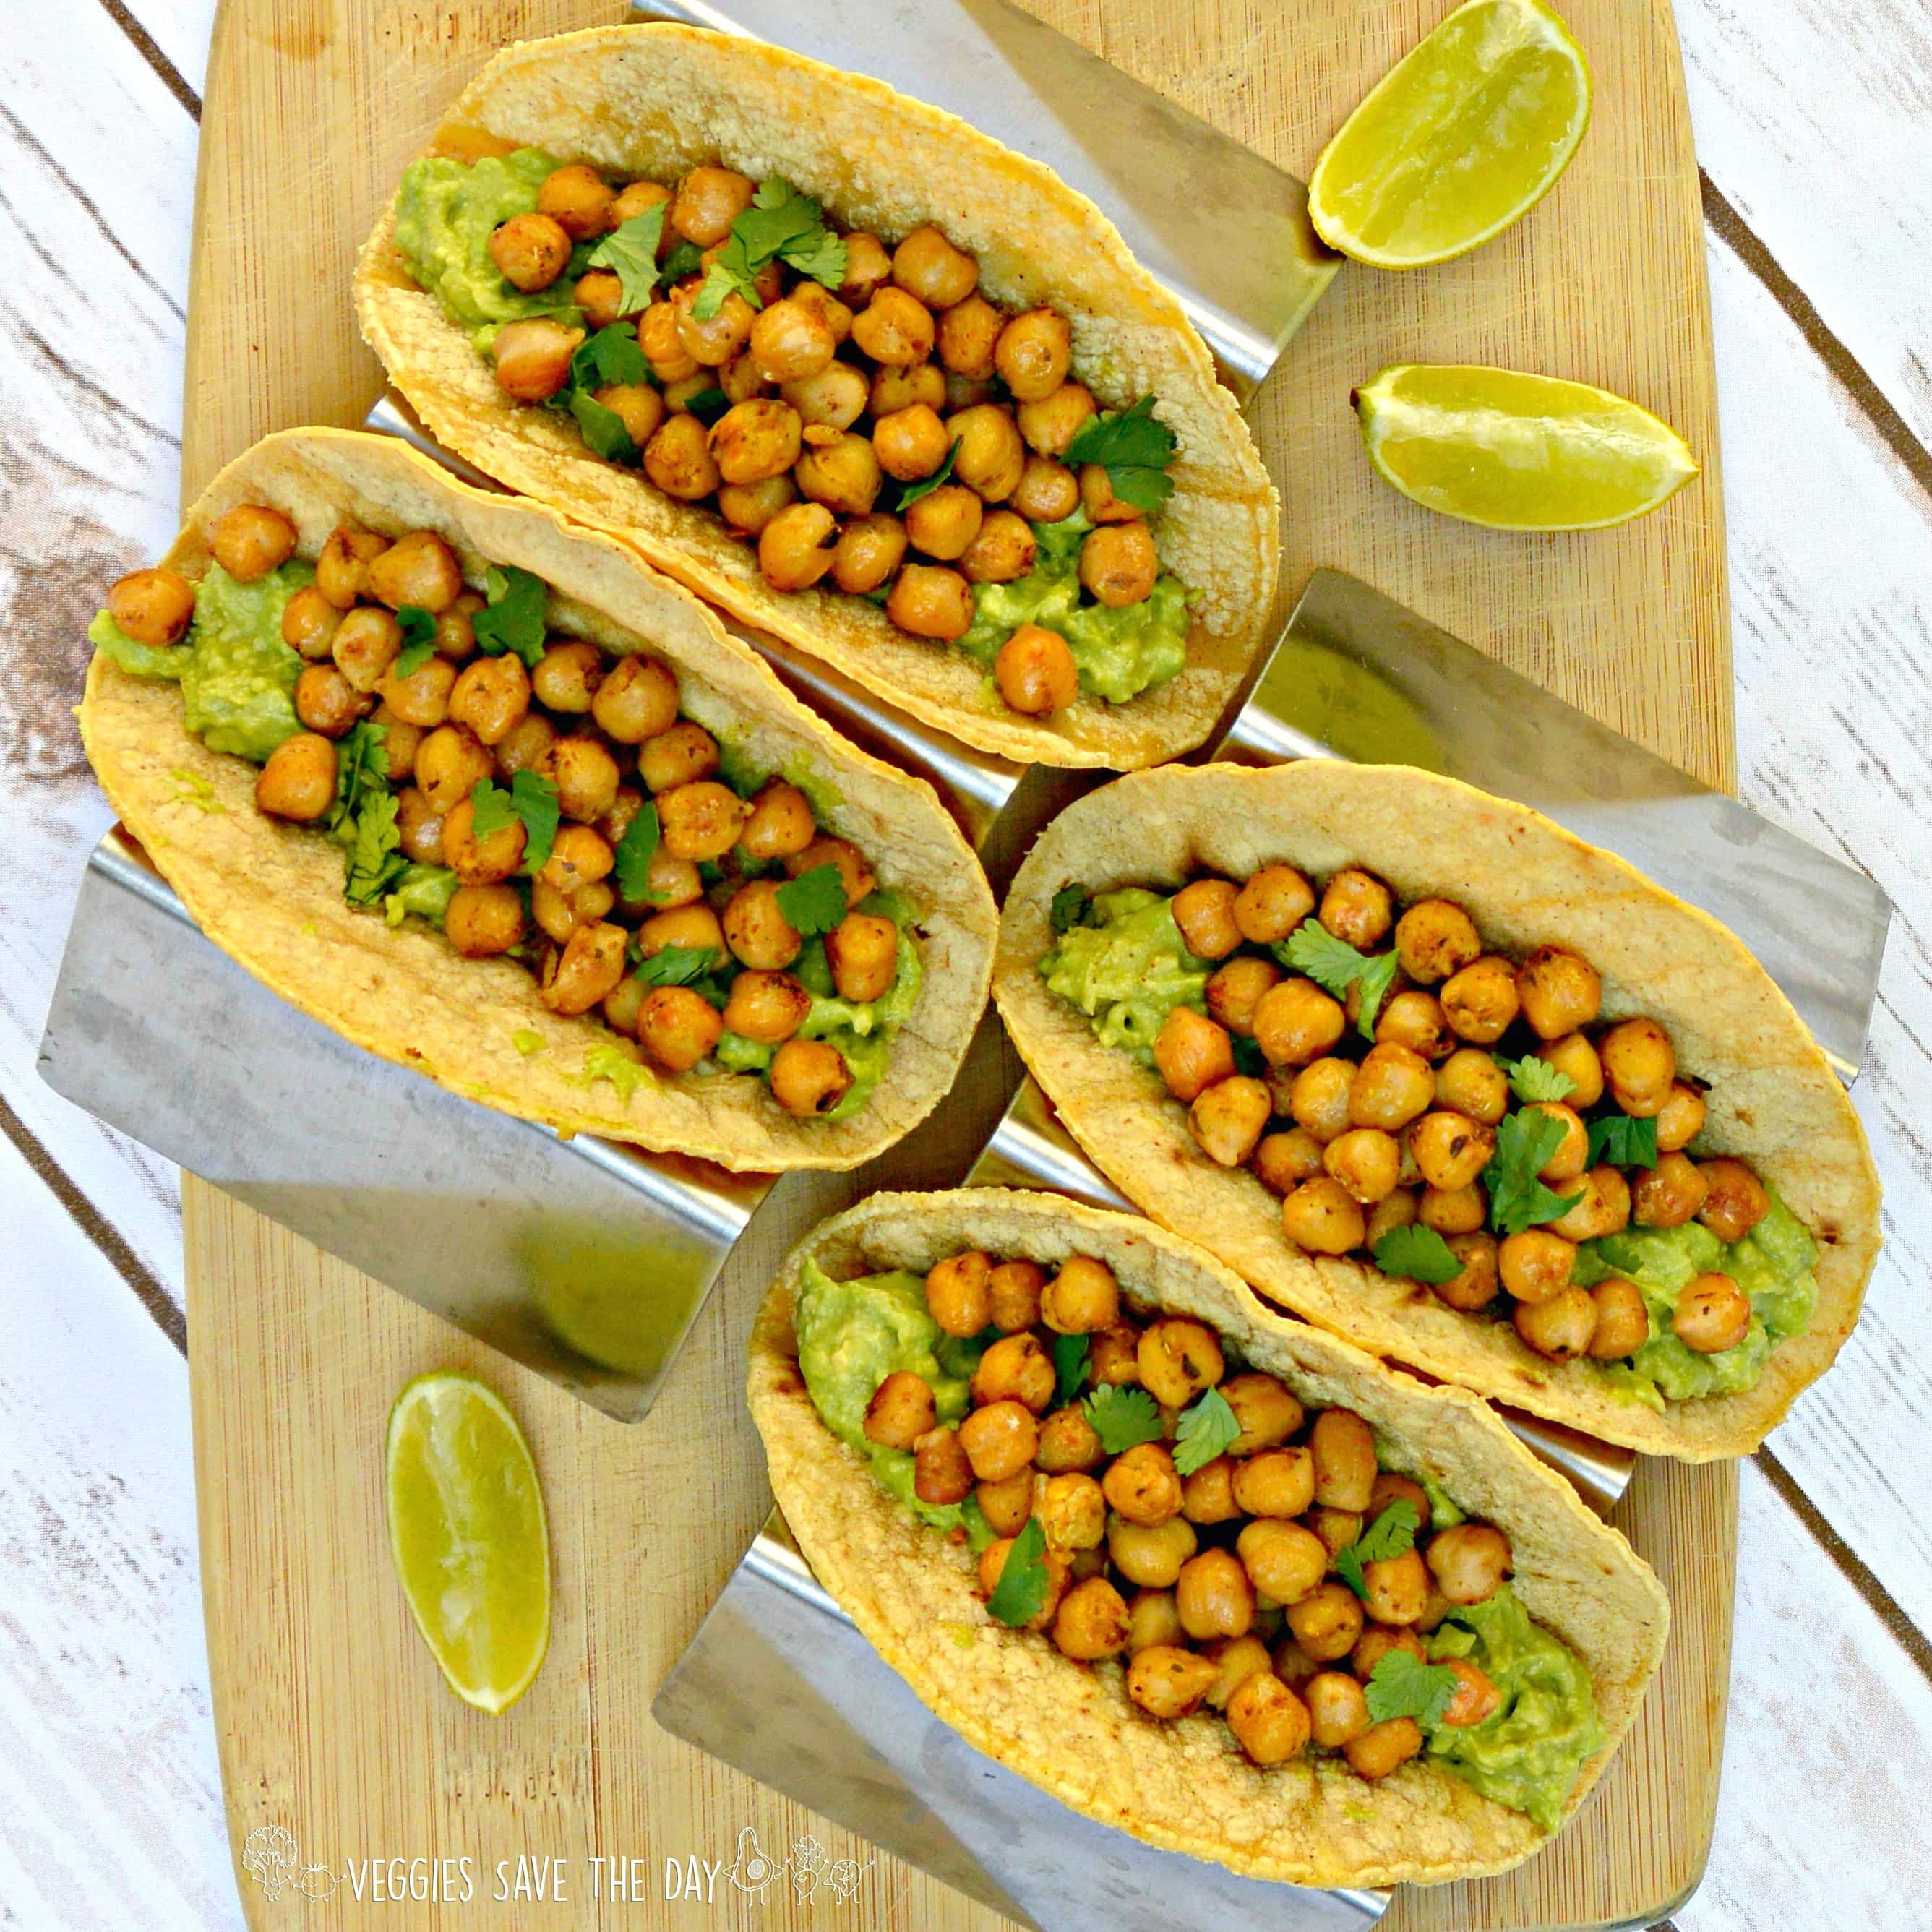 Gluten-Free Vegan Recipes chickpea and guacamole tacos